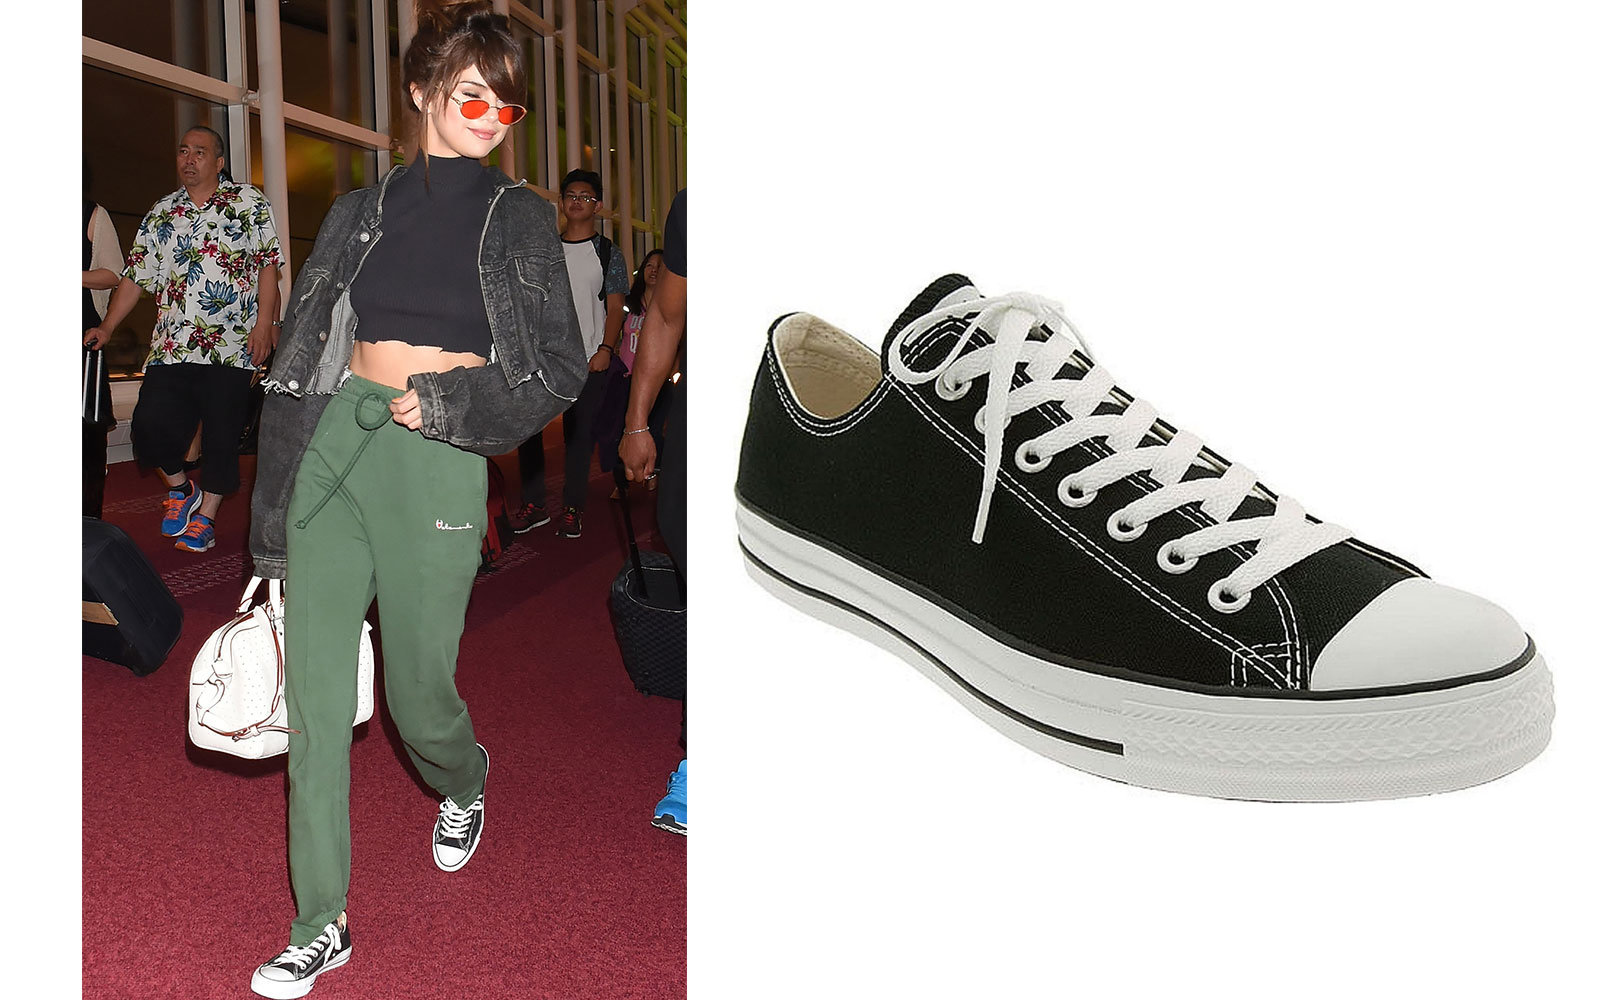 6086e6c9d4 The Stylish Comfy Shoes That Celebrities Wear for Traveling | Travel ...